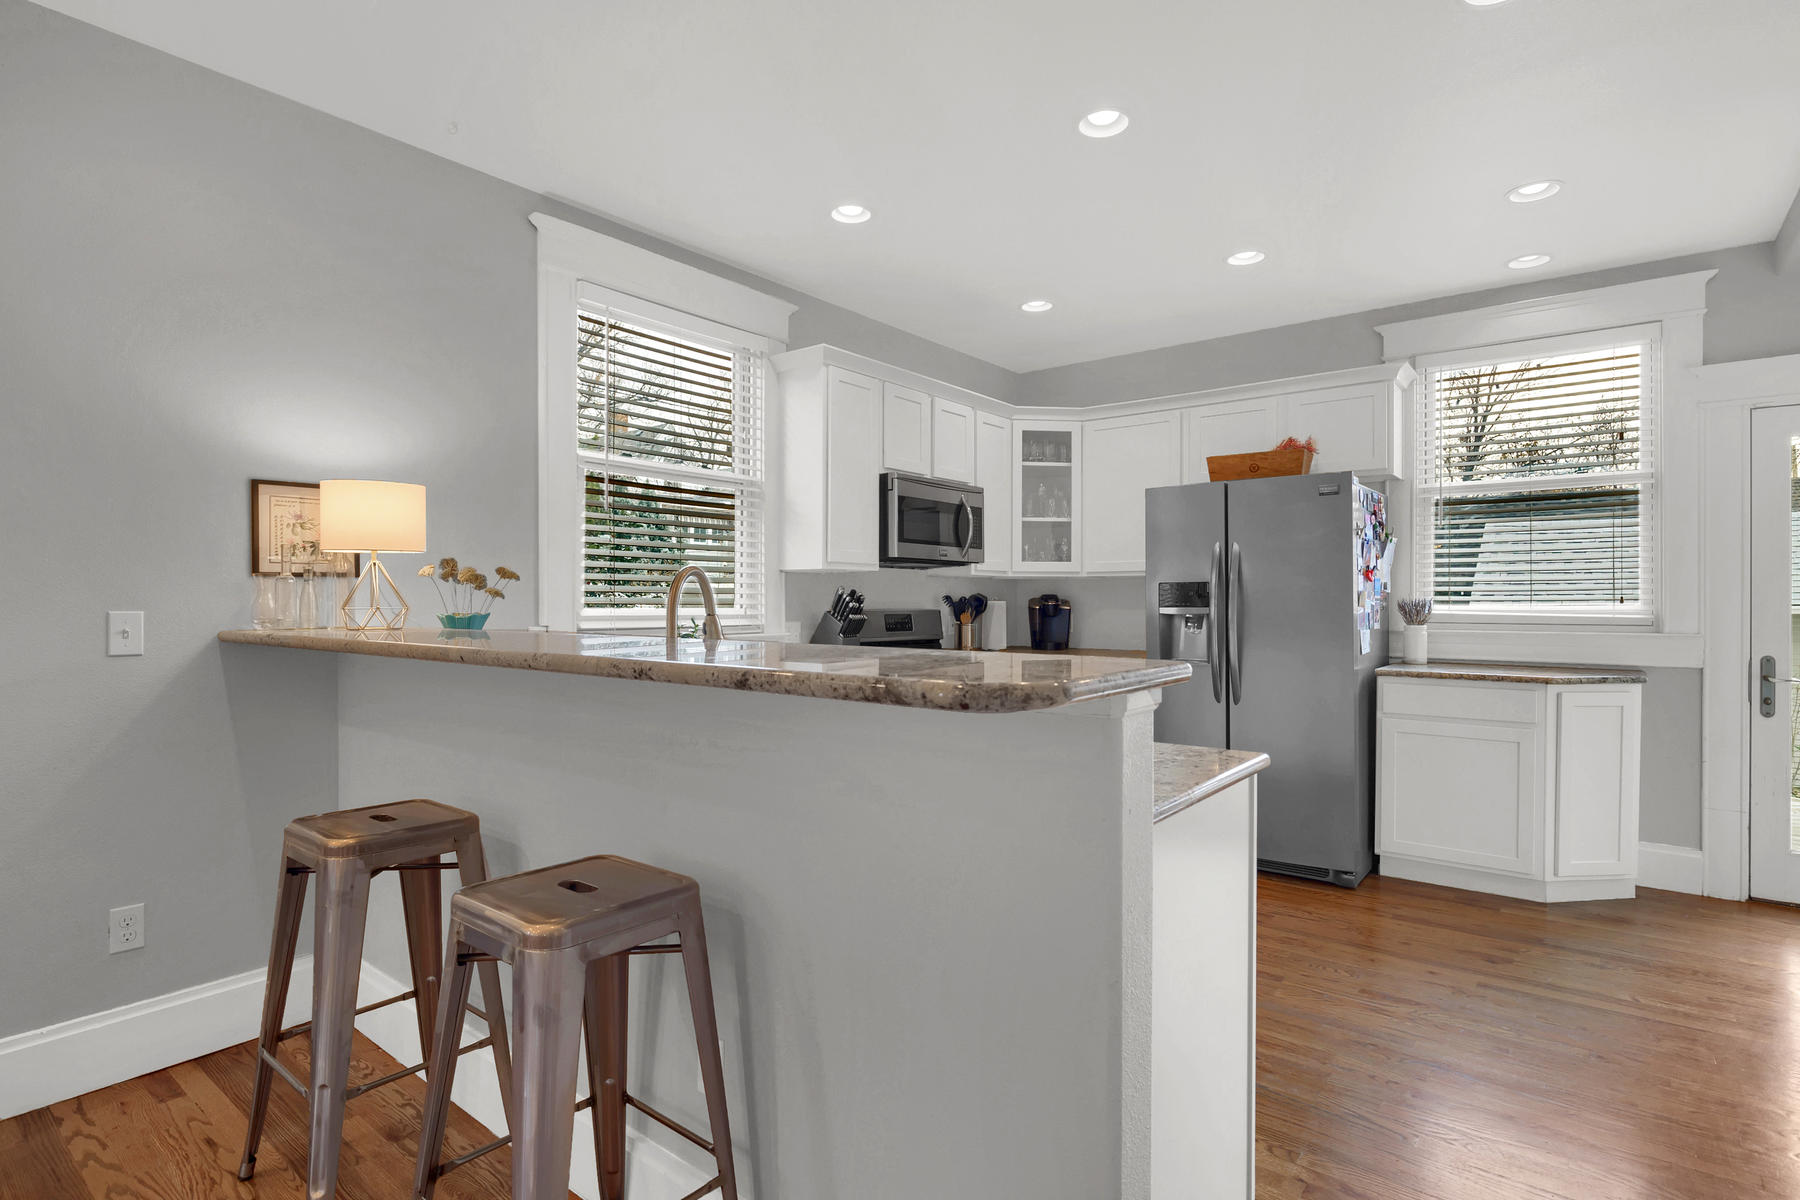 Additional photo for property listing at Turn of the Century charm + modern updating in a coveted location! 119 E Espanola St Colorado Springs, Colorado 80907 United States